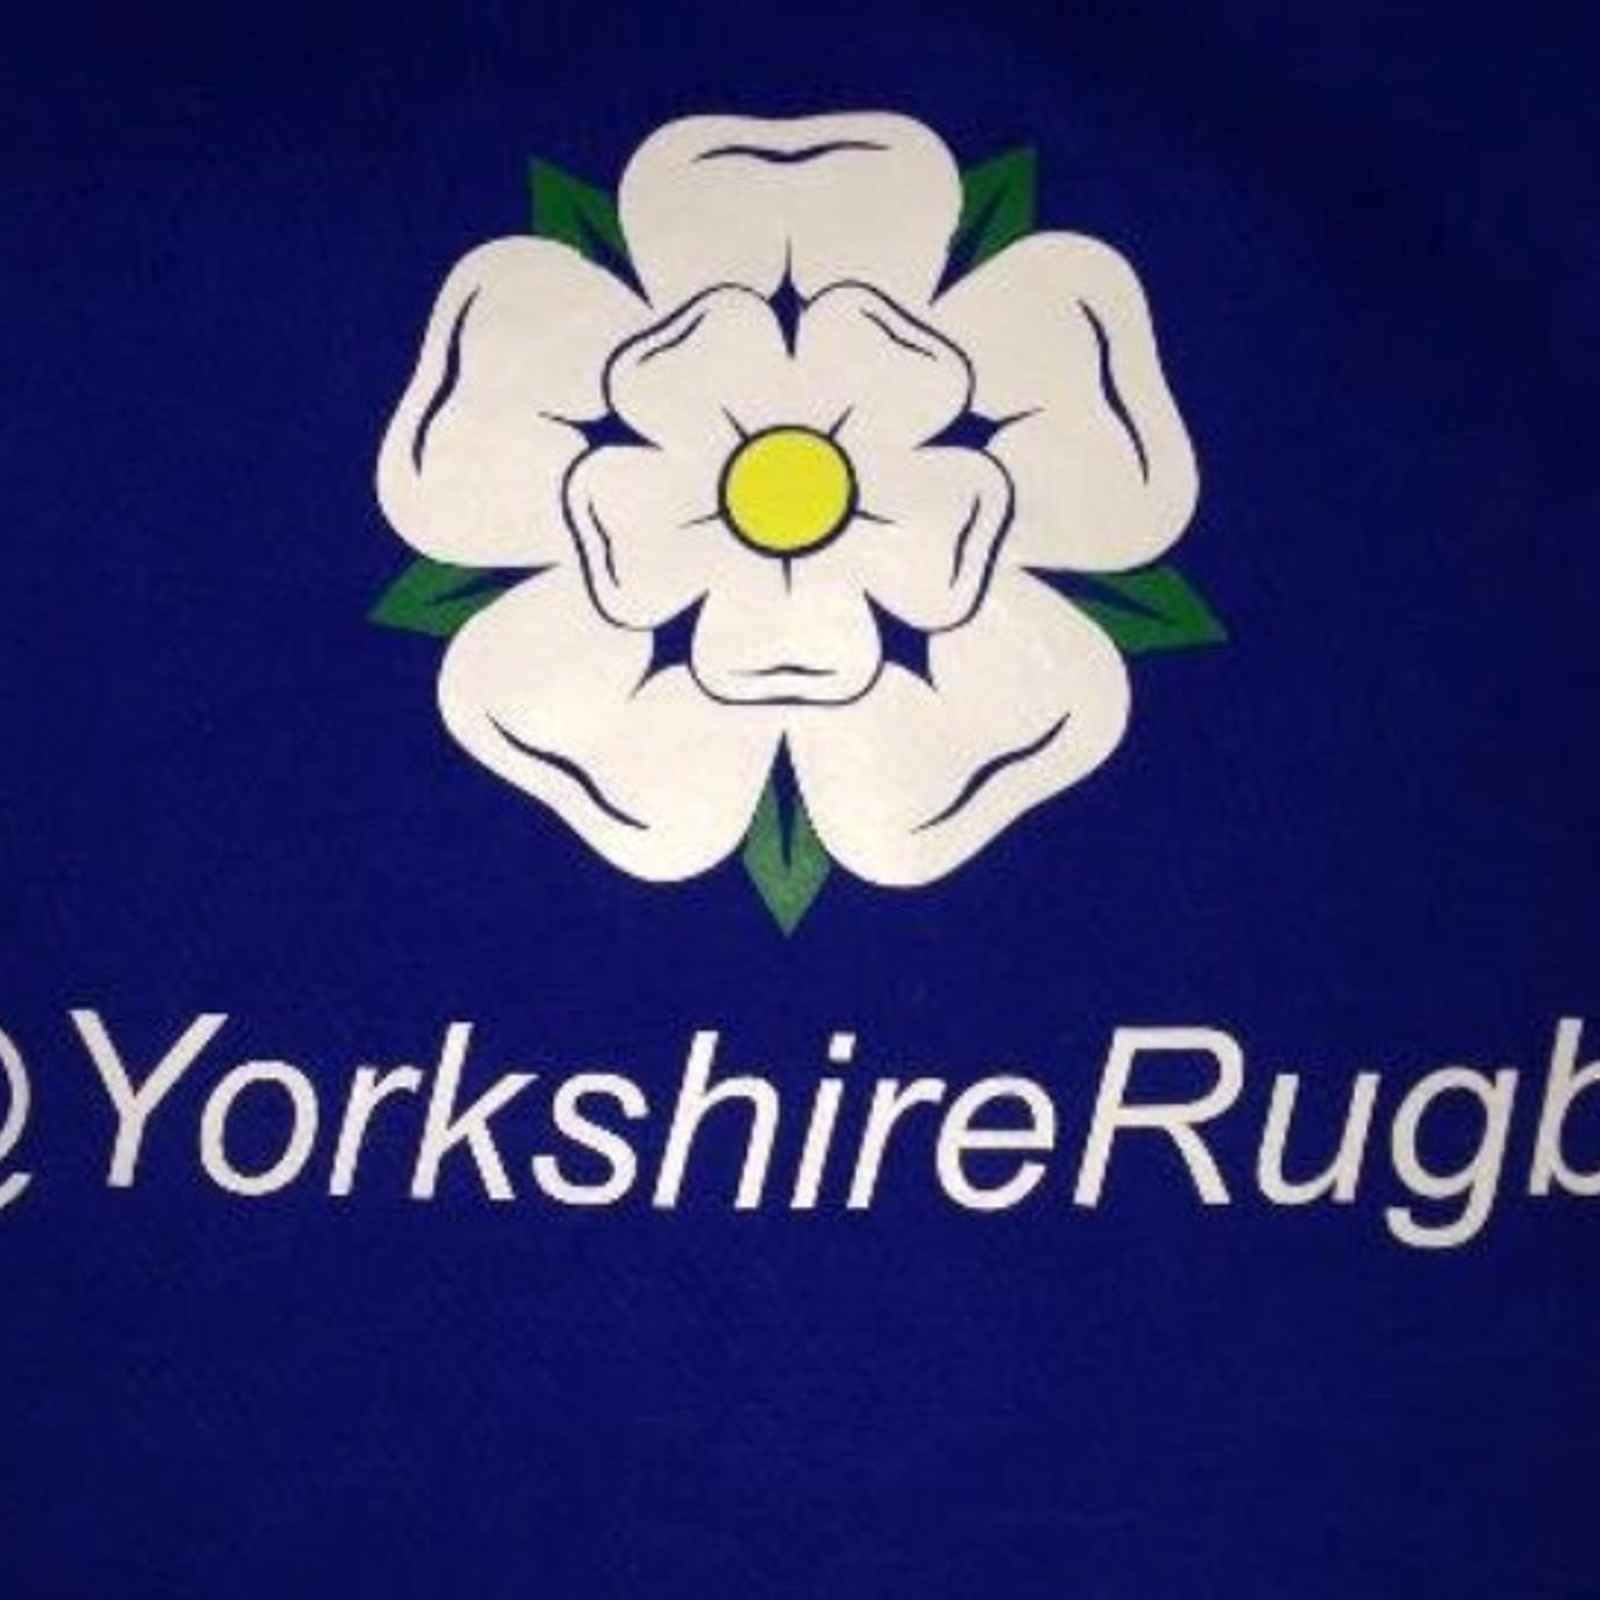 Yorkshire Double Header - Sunday 22nd May 2016